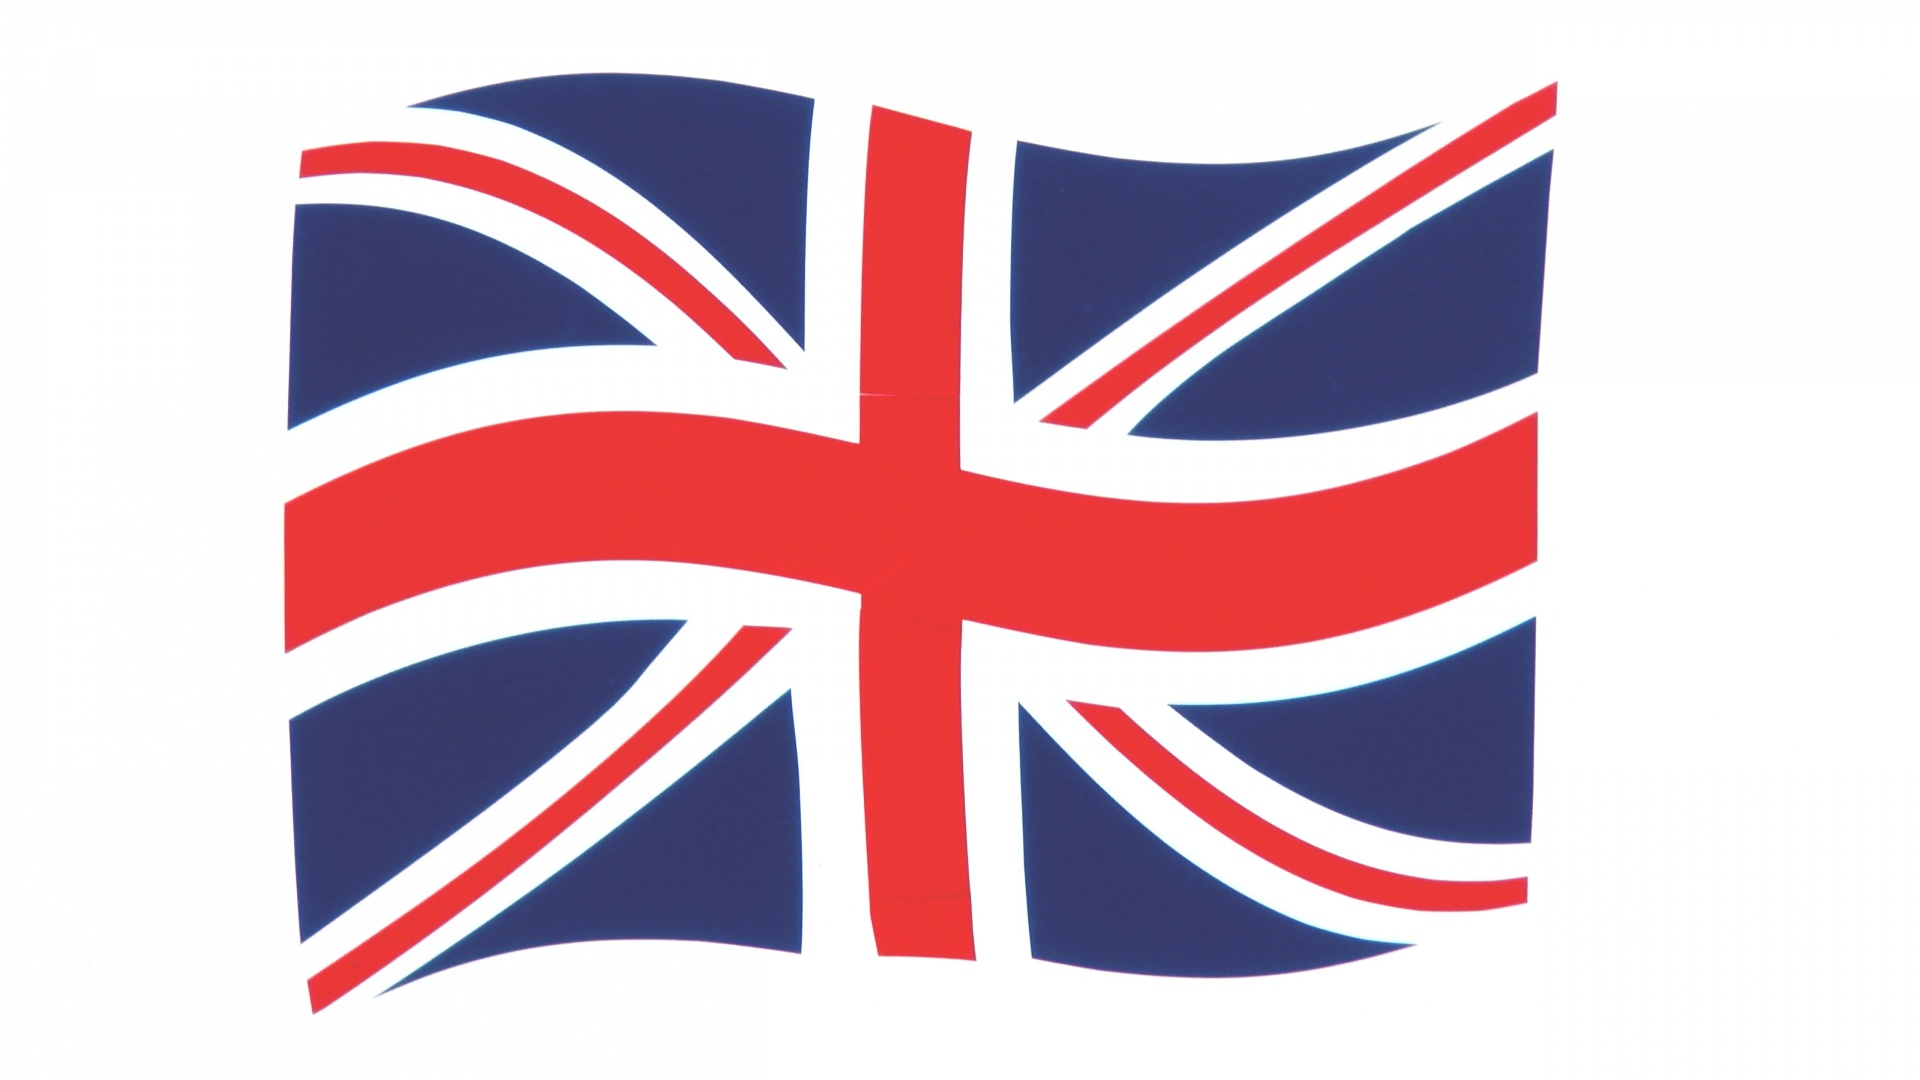 united-kingdom-union-jack-flag.jpg